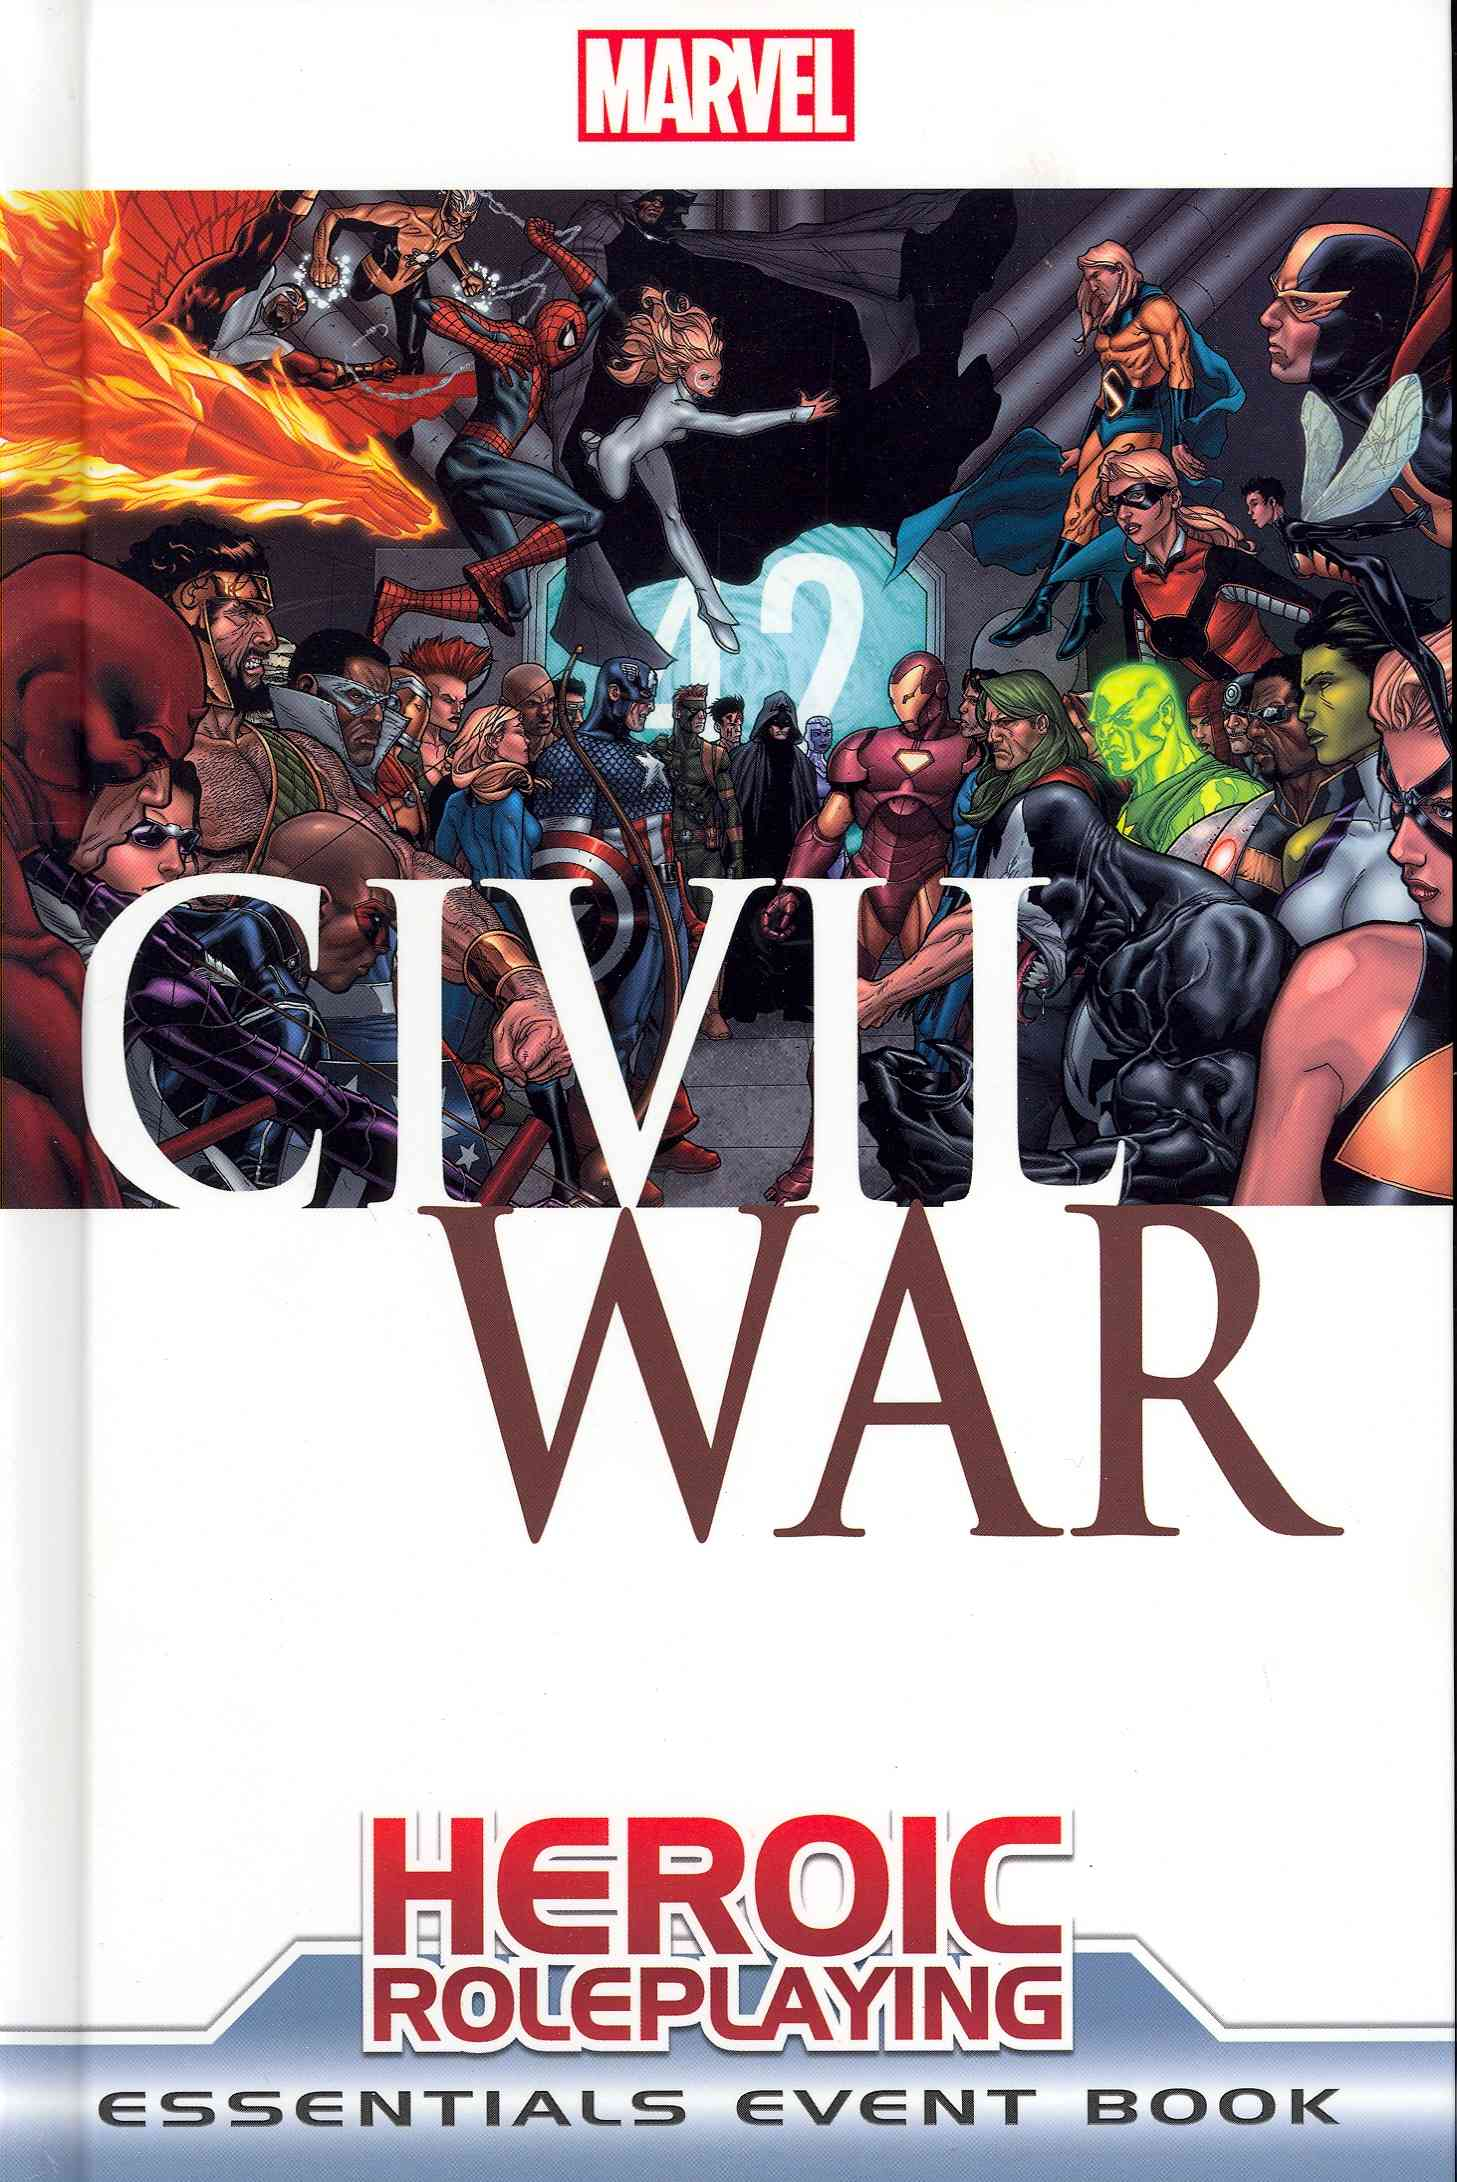 Marval Heroic Roleplaying Civil War Essentials Event Book (Hardcover)